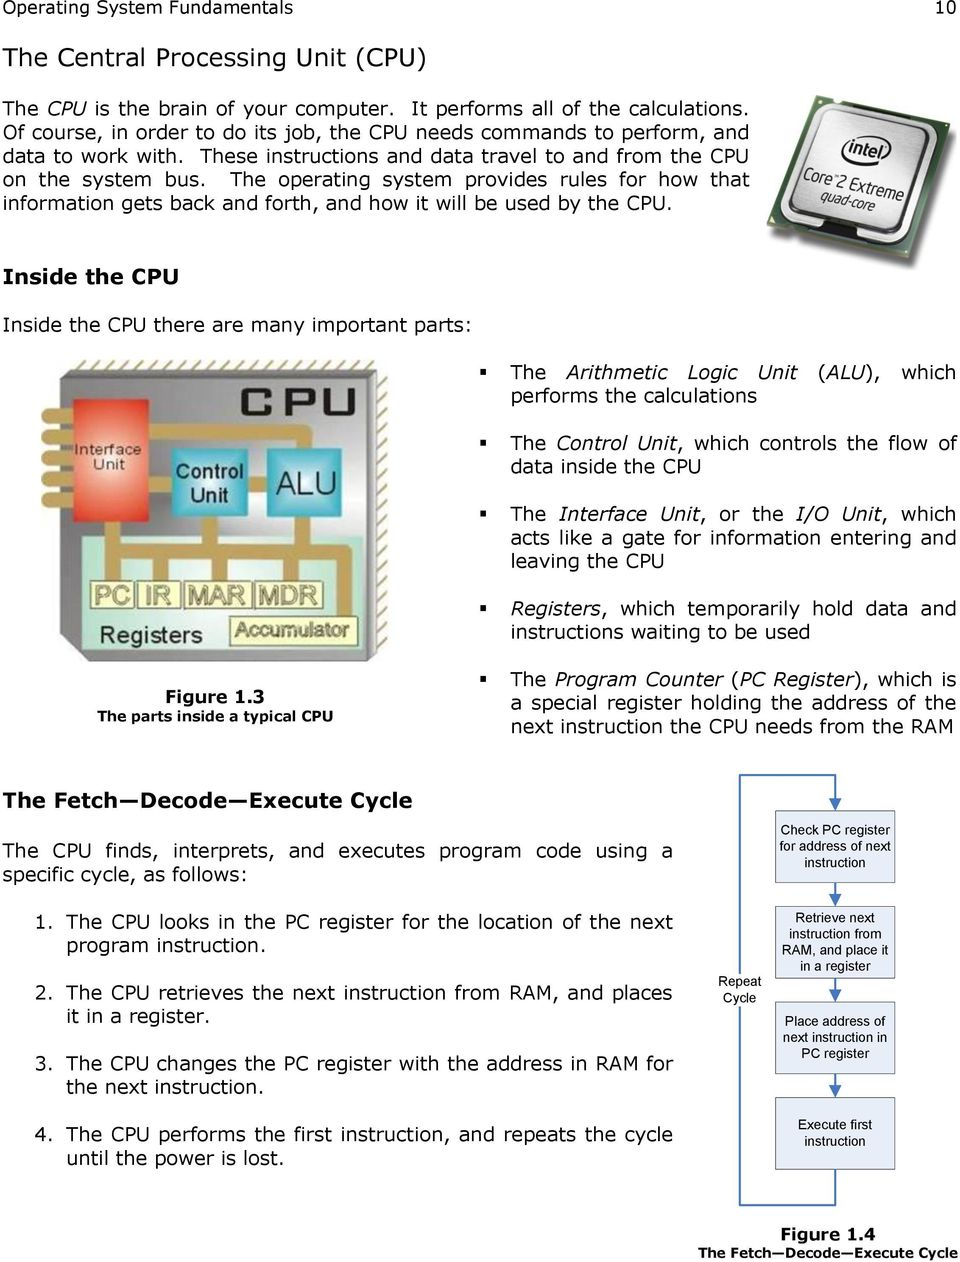 The operating system provides rules for how that information gets back and forth, and how it will be used by the CPU.